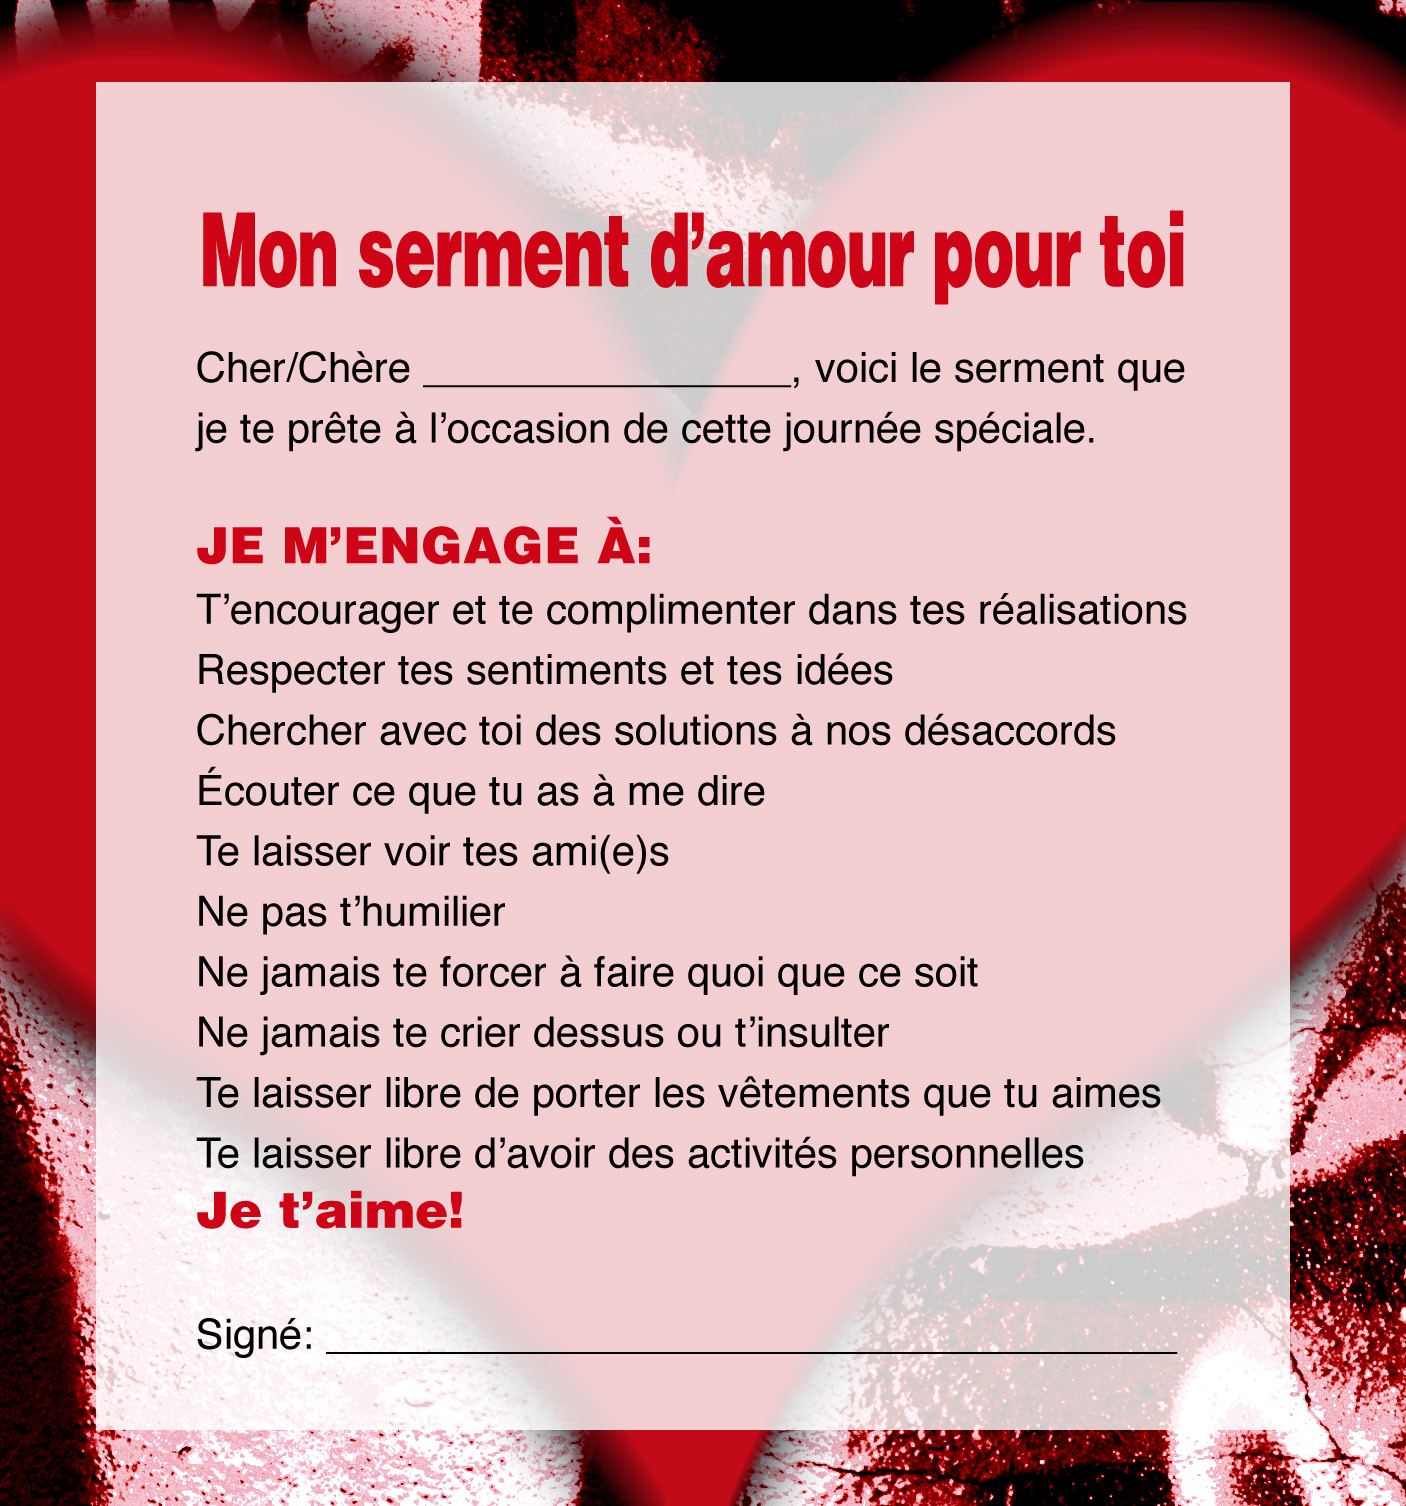 Po sie et citations d 39 amour - Parole saint valentin ...